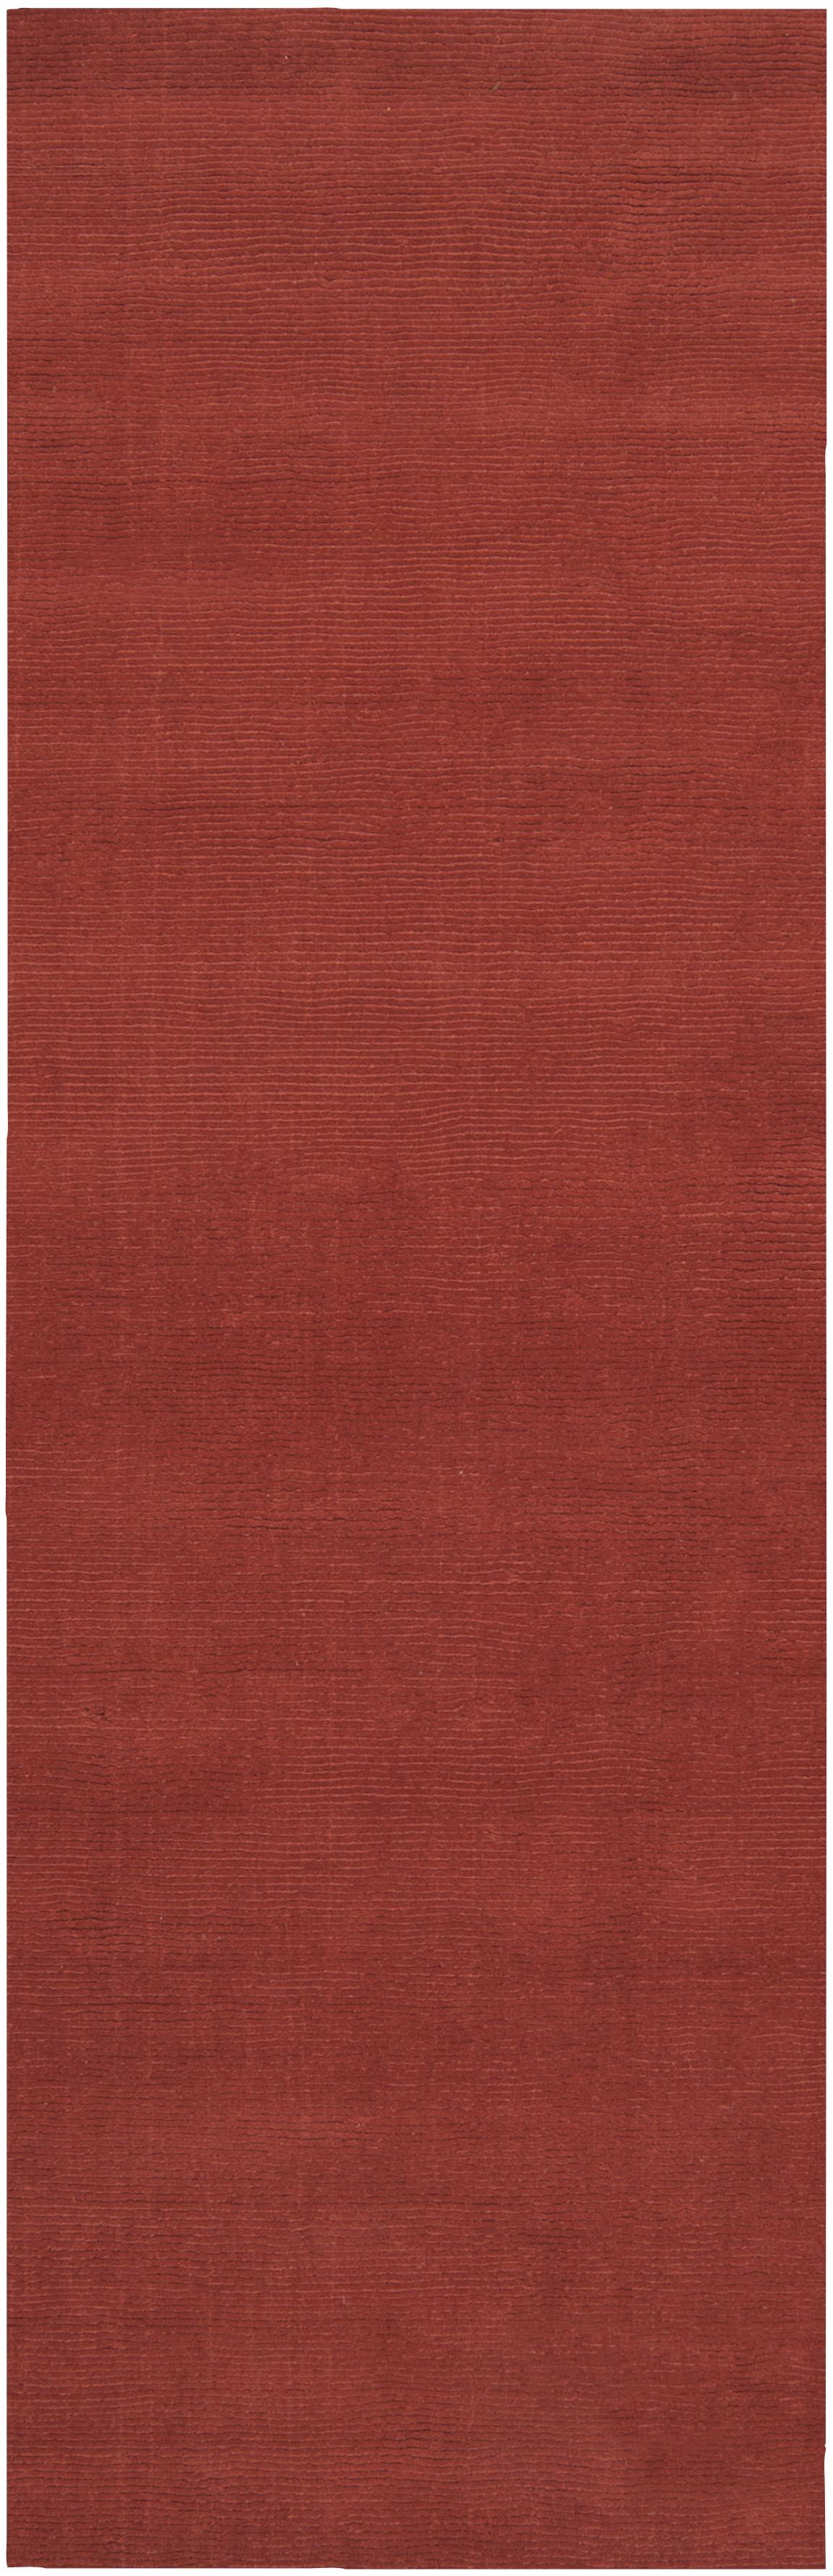 "Surya Mystique 2'6"" x 8' - Item Number: M332-268"